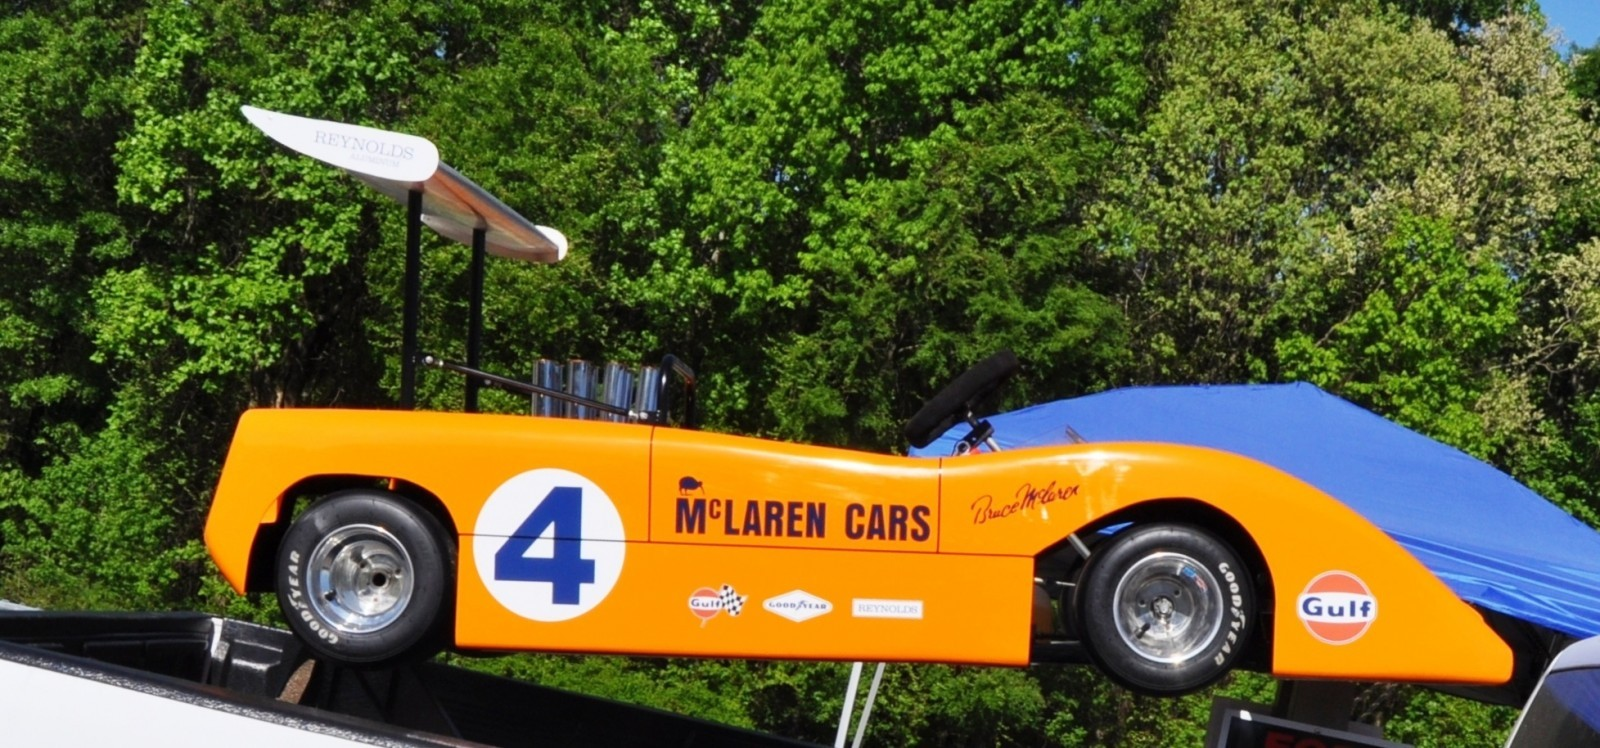 McLaren M8B Go-Kart Seeking Posh New Home, McLaren Owner Strongly Preferred 3